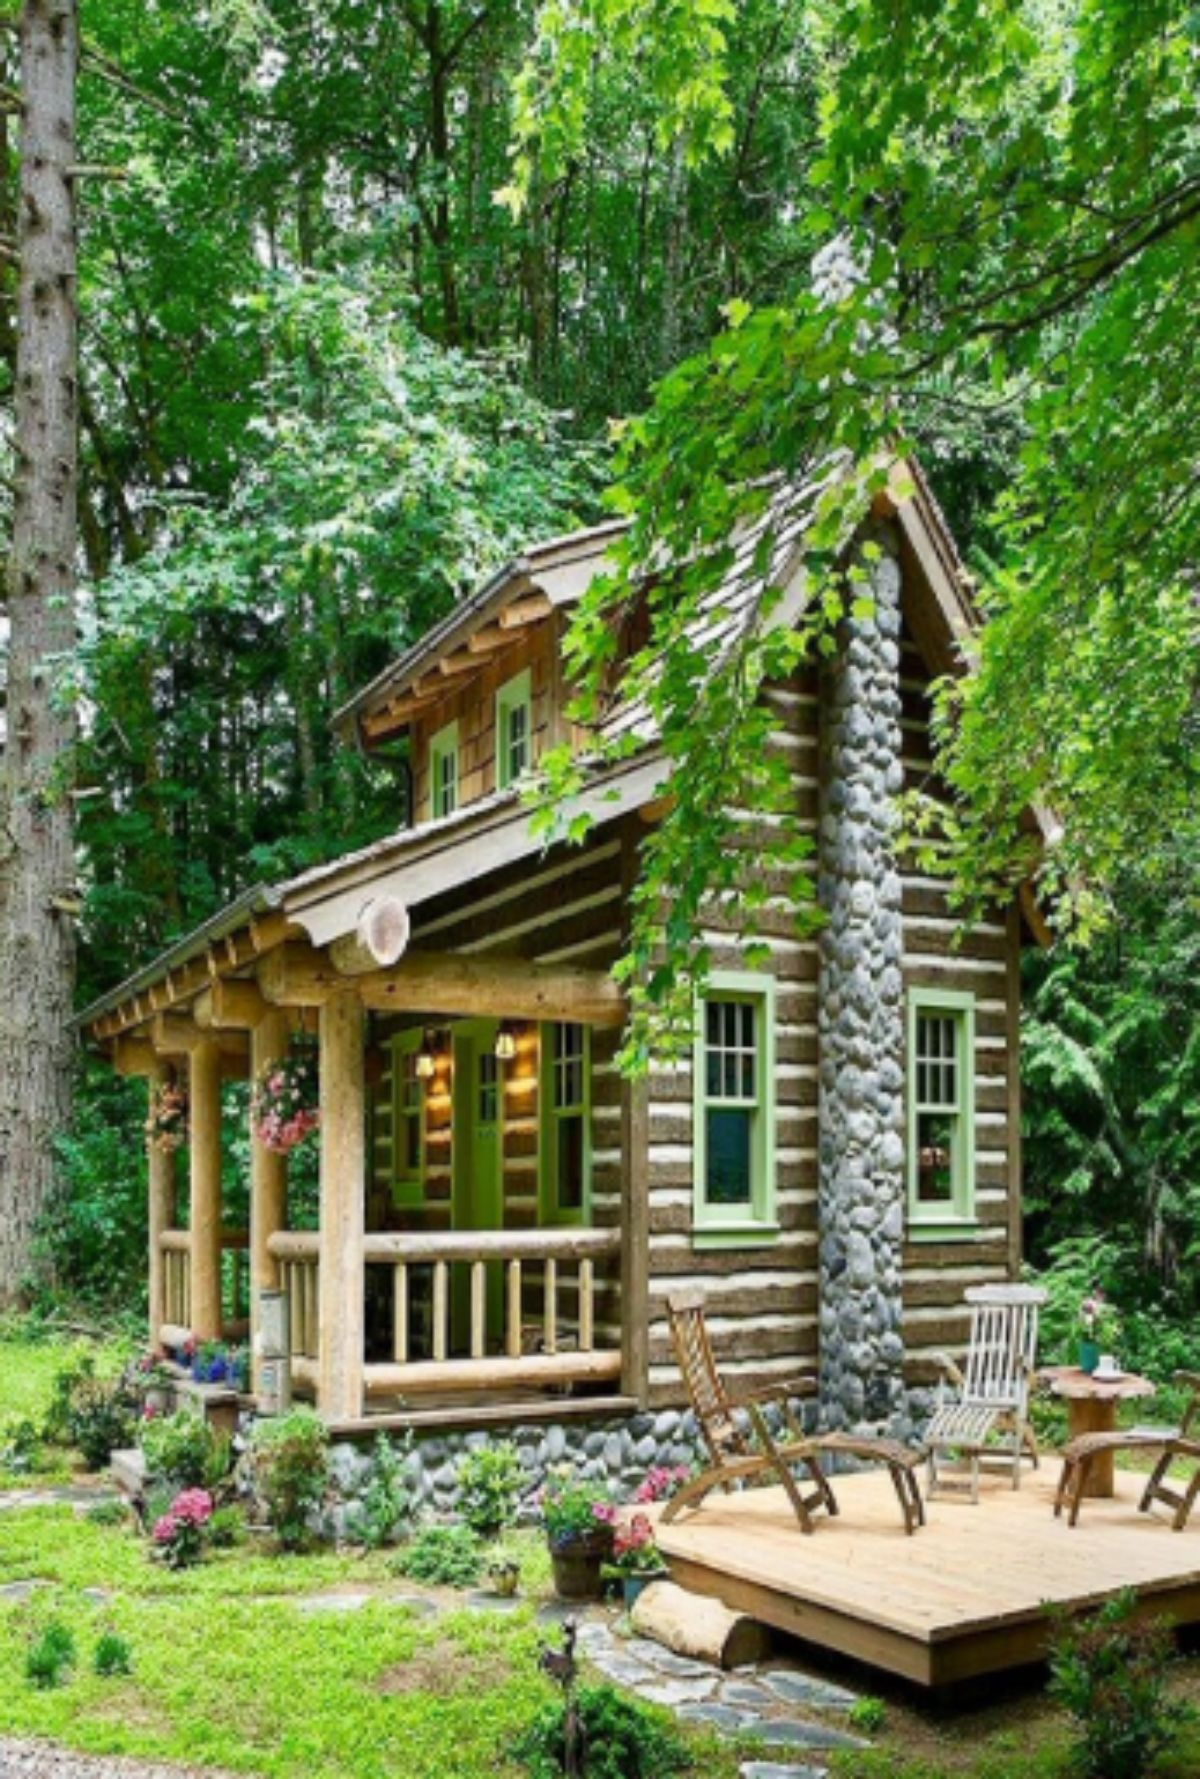 classic woodie log cabin with stone wall